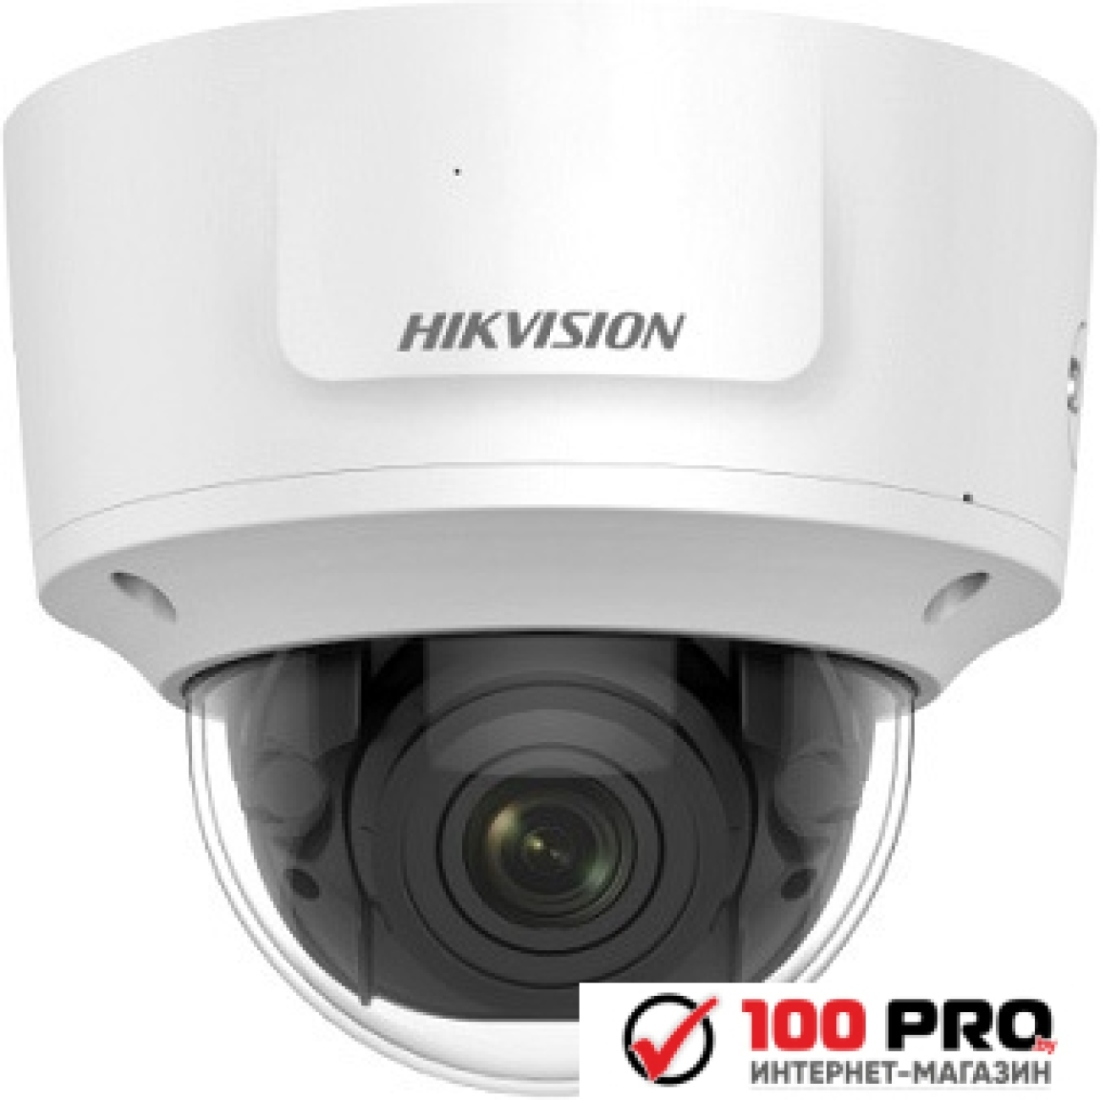 IP-камера Hikvision DS-2CD2723G0-IZS